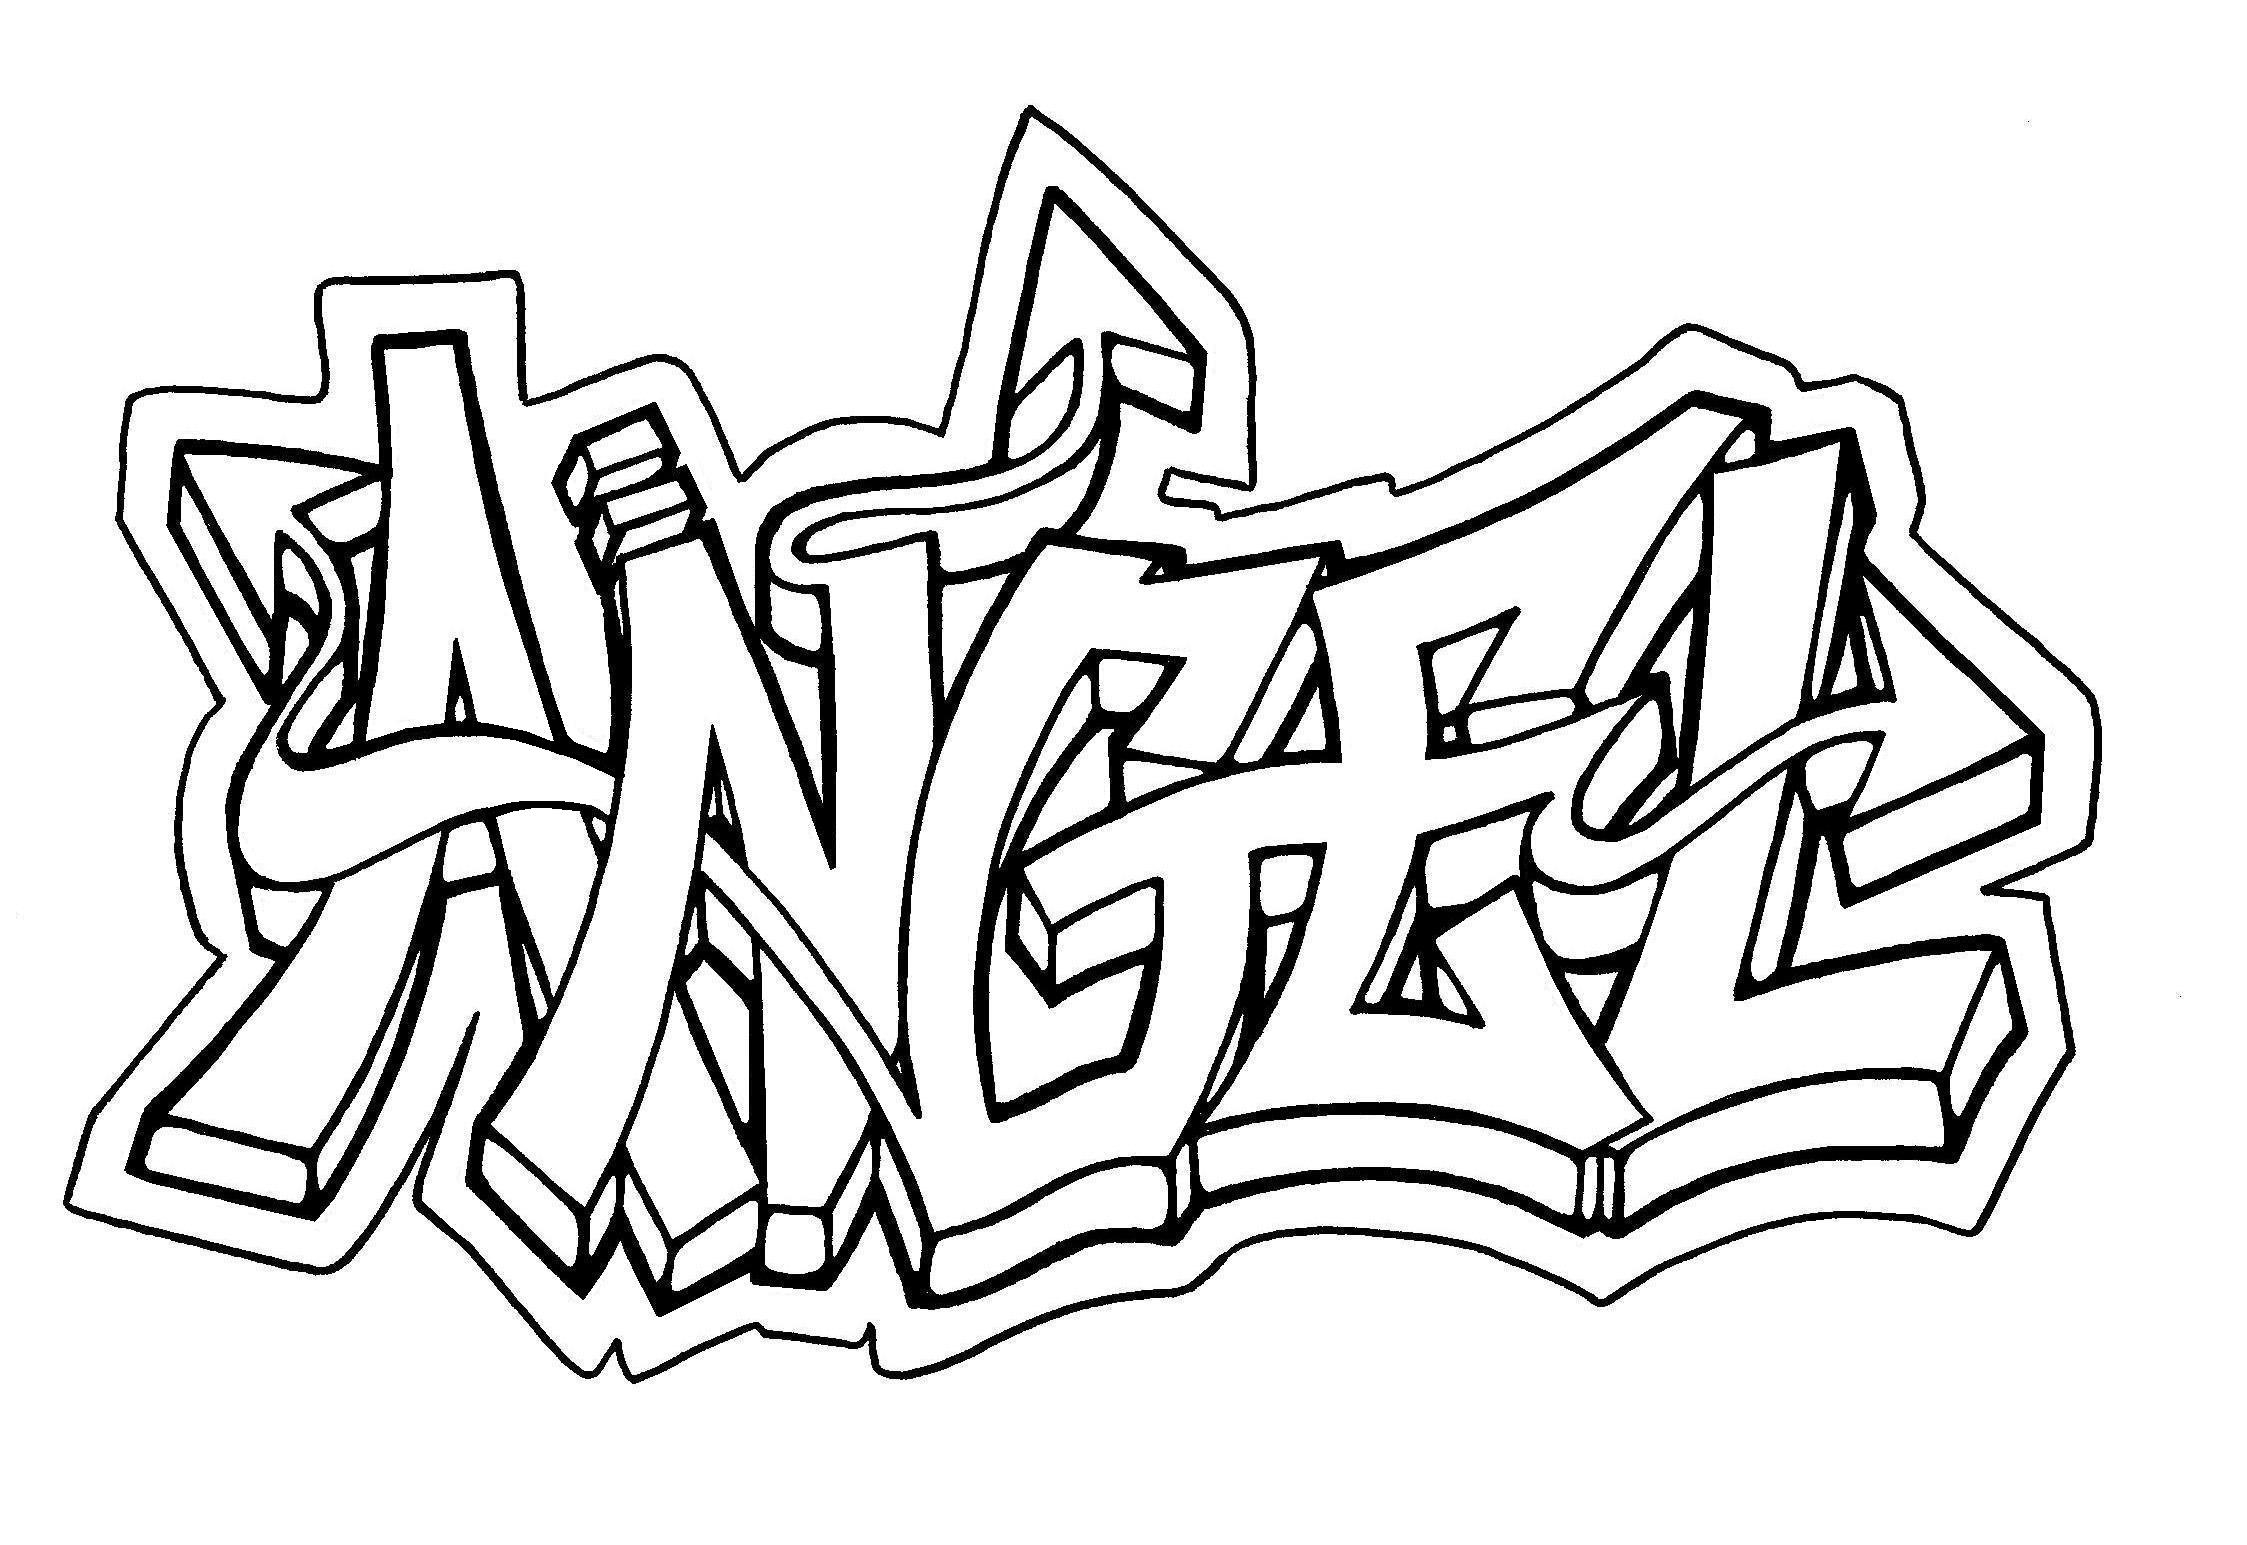 2247x1545 Graffiti Sketch Angel How To Draw A Heart With Angel Wings